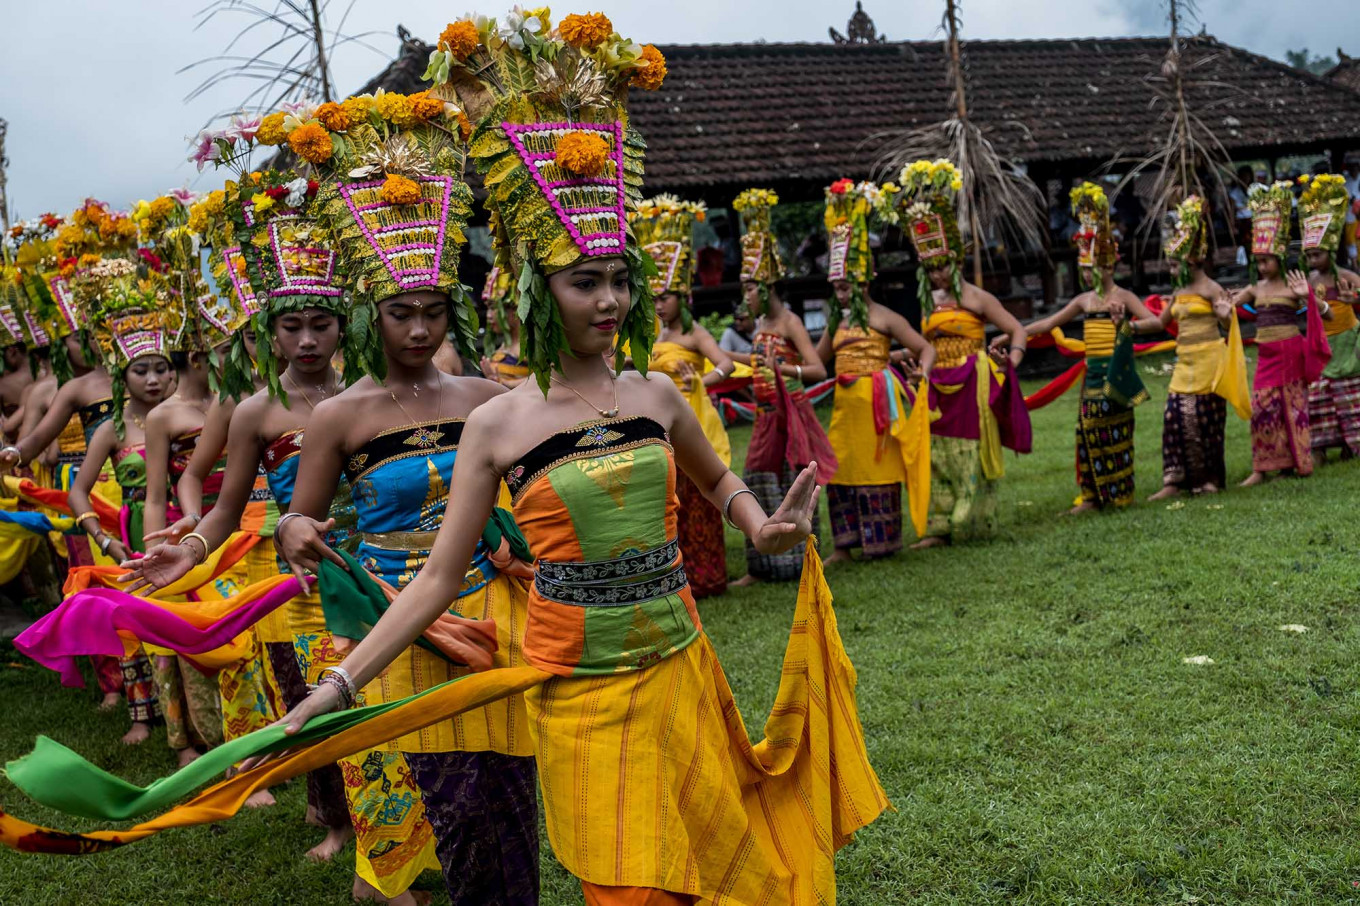 Dance across the village: The rejang dancers begin their performance from Bale Gede to Jasri village's temple yard. JP/Agung Parameswara